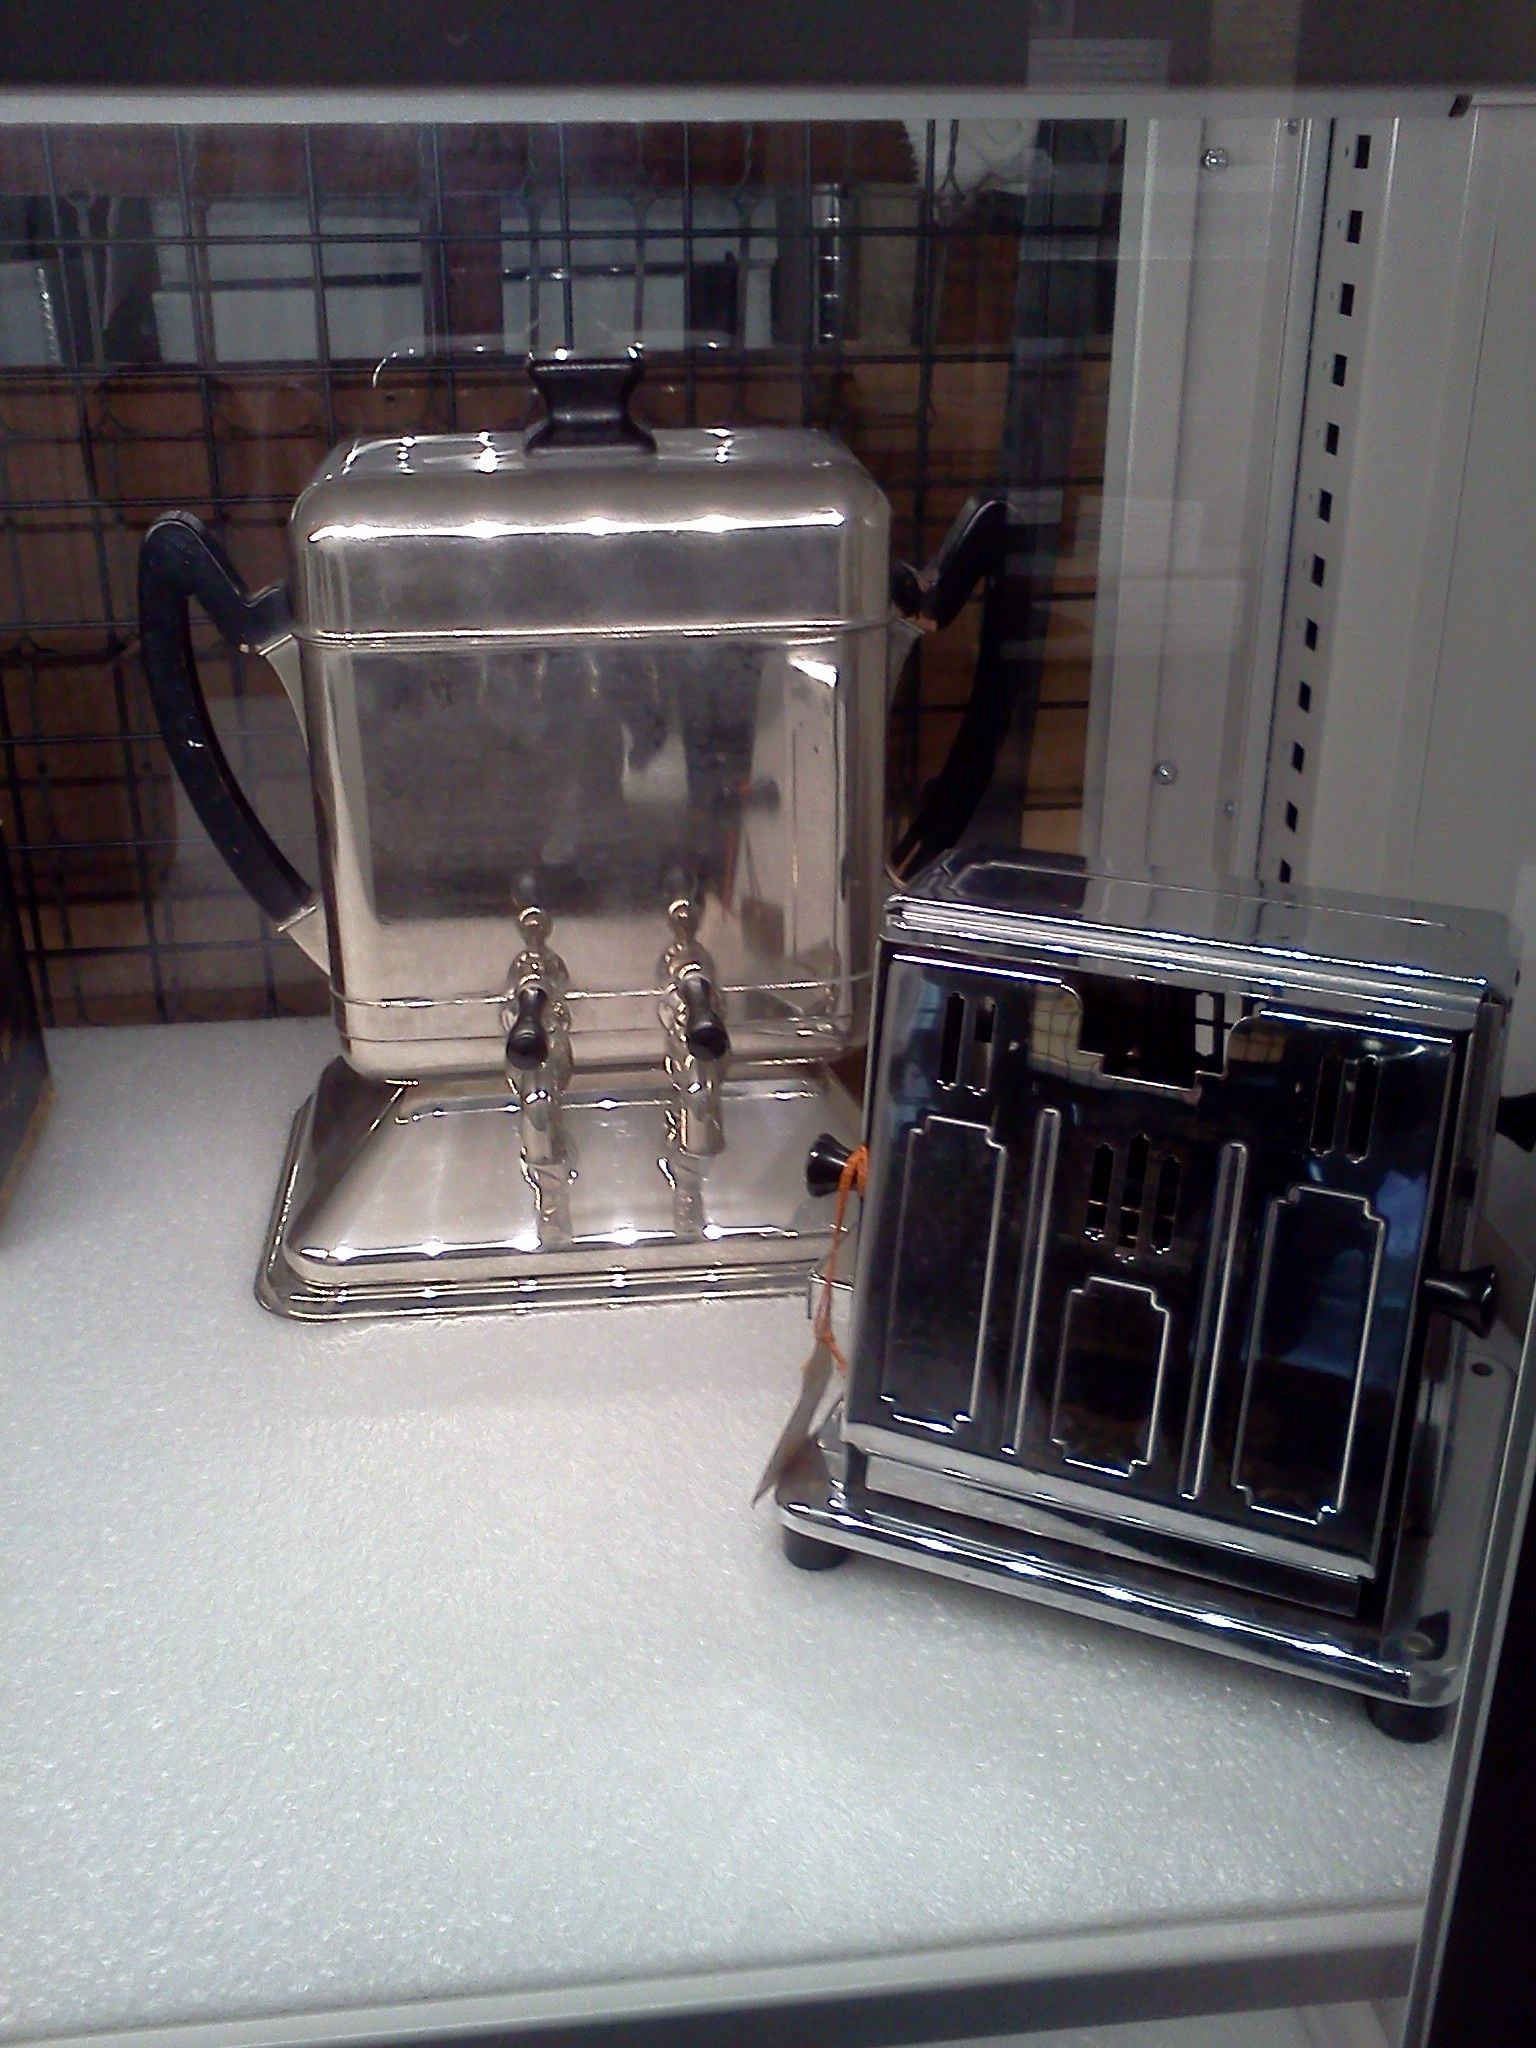 Edicraft appliances-a coffee-maker and a toaster. Thomas Alva Edison Pinterest Coffee maker